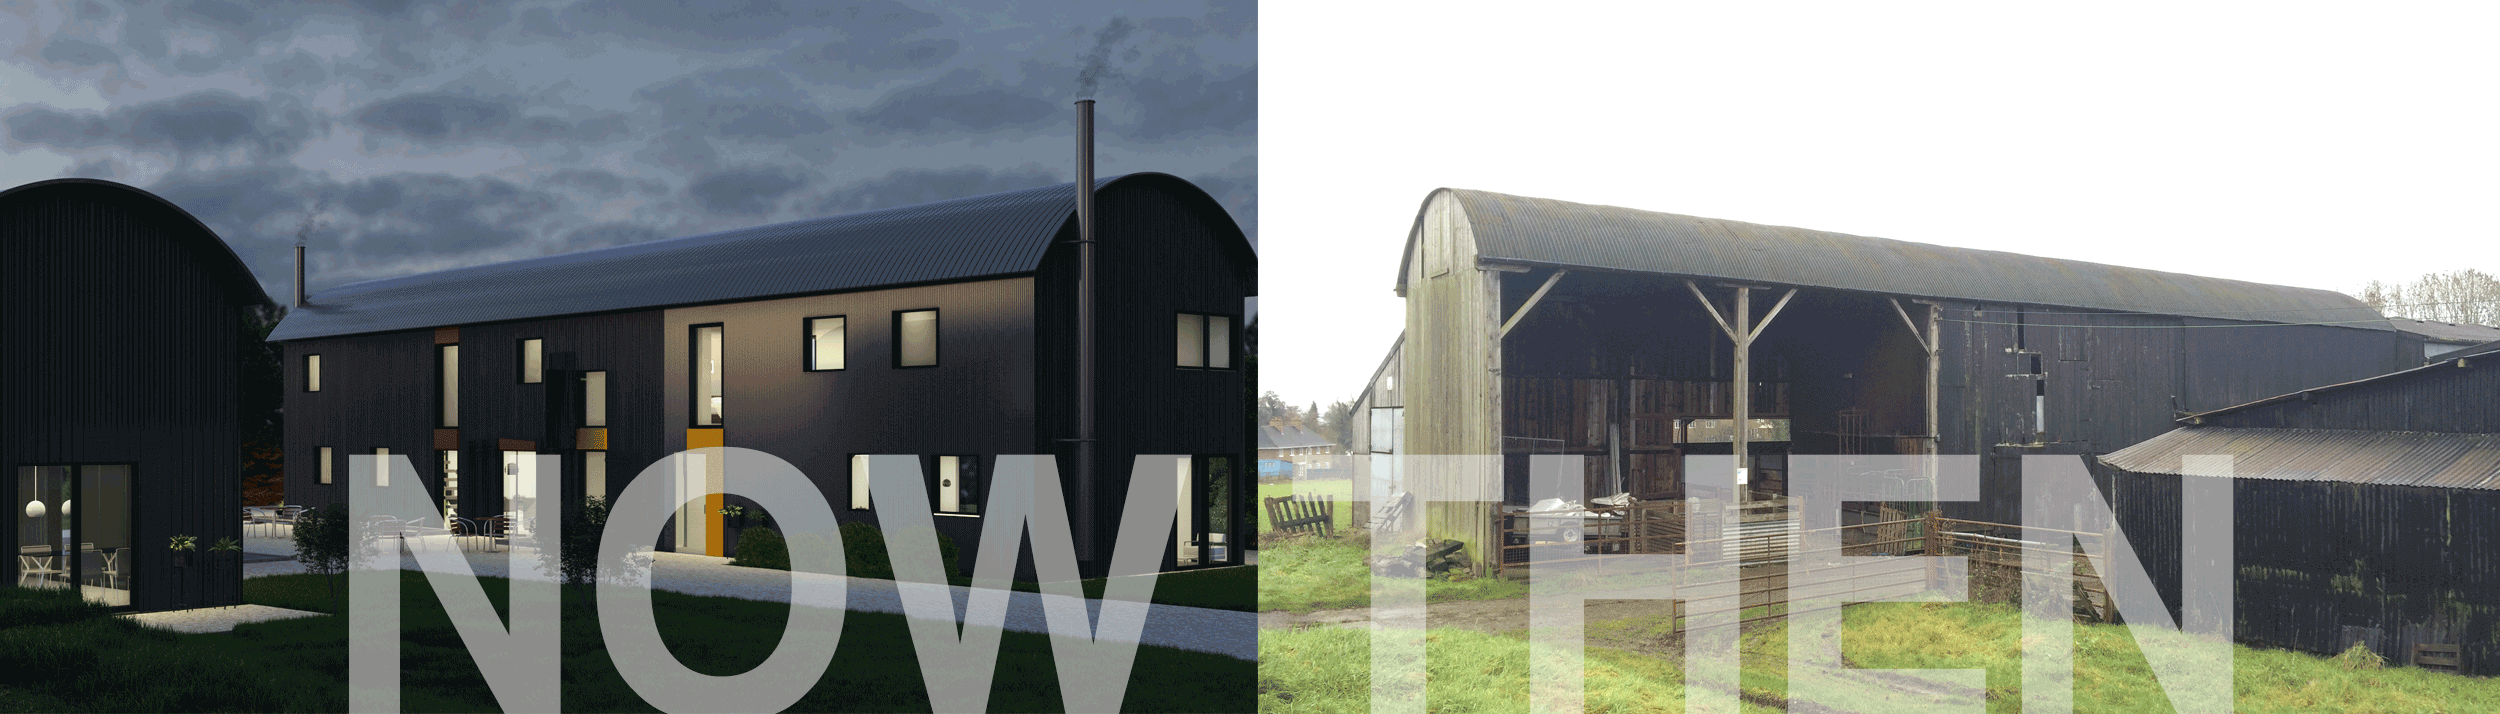 Dutch barn before and after conversion